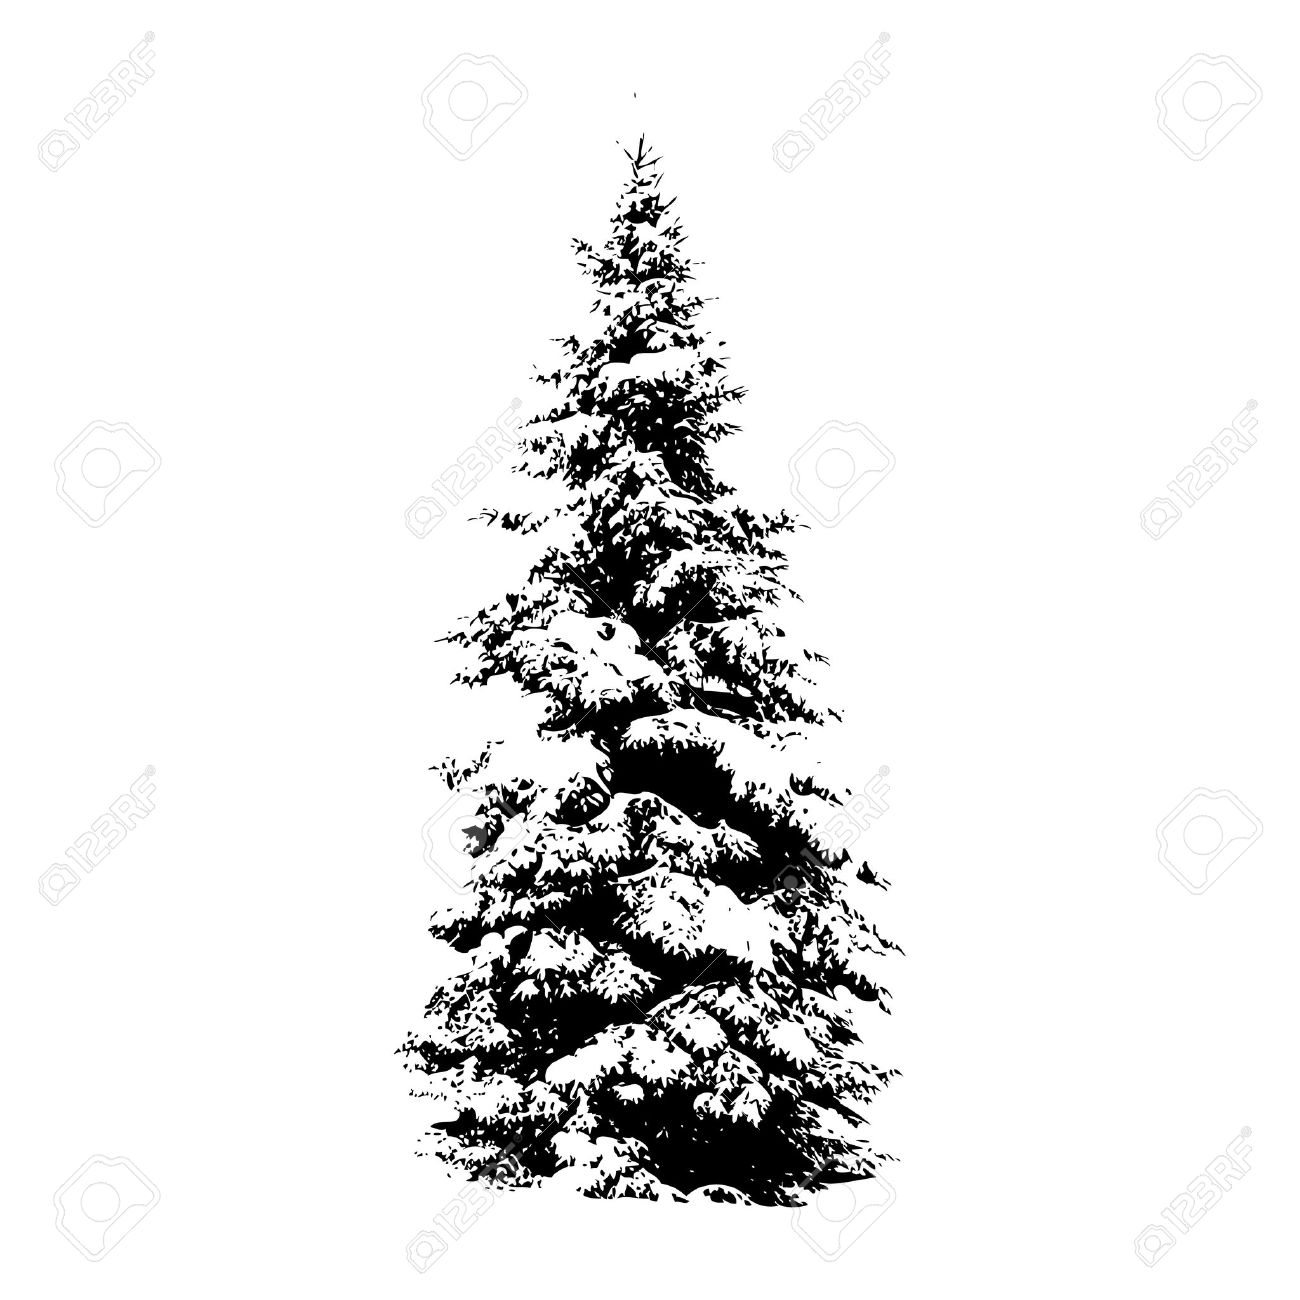 Pine Tree Vector Illustration For Your Design Royalty Free Cliparts